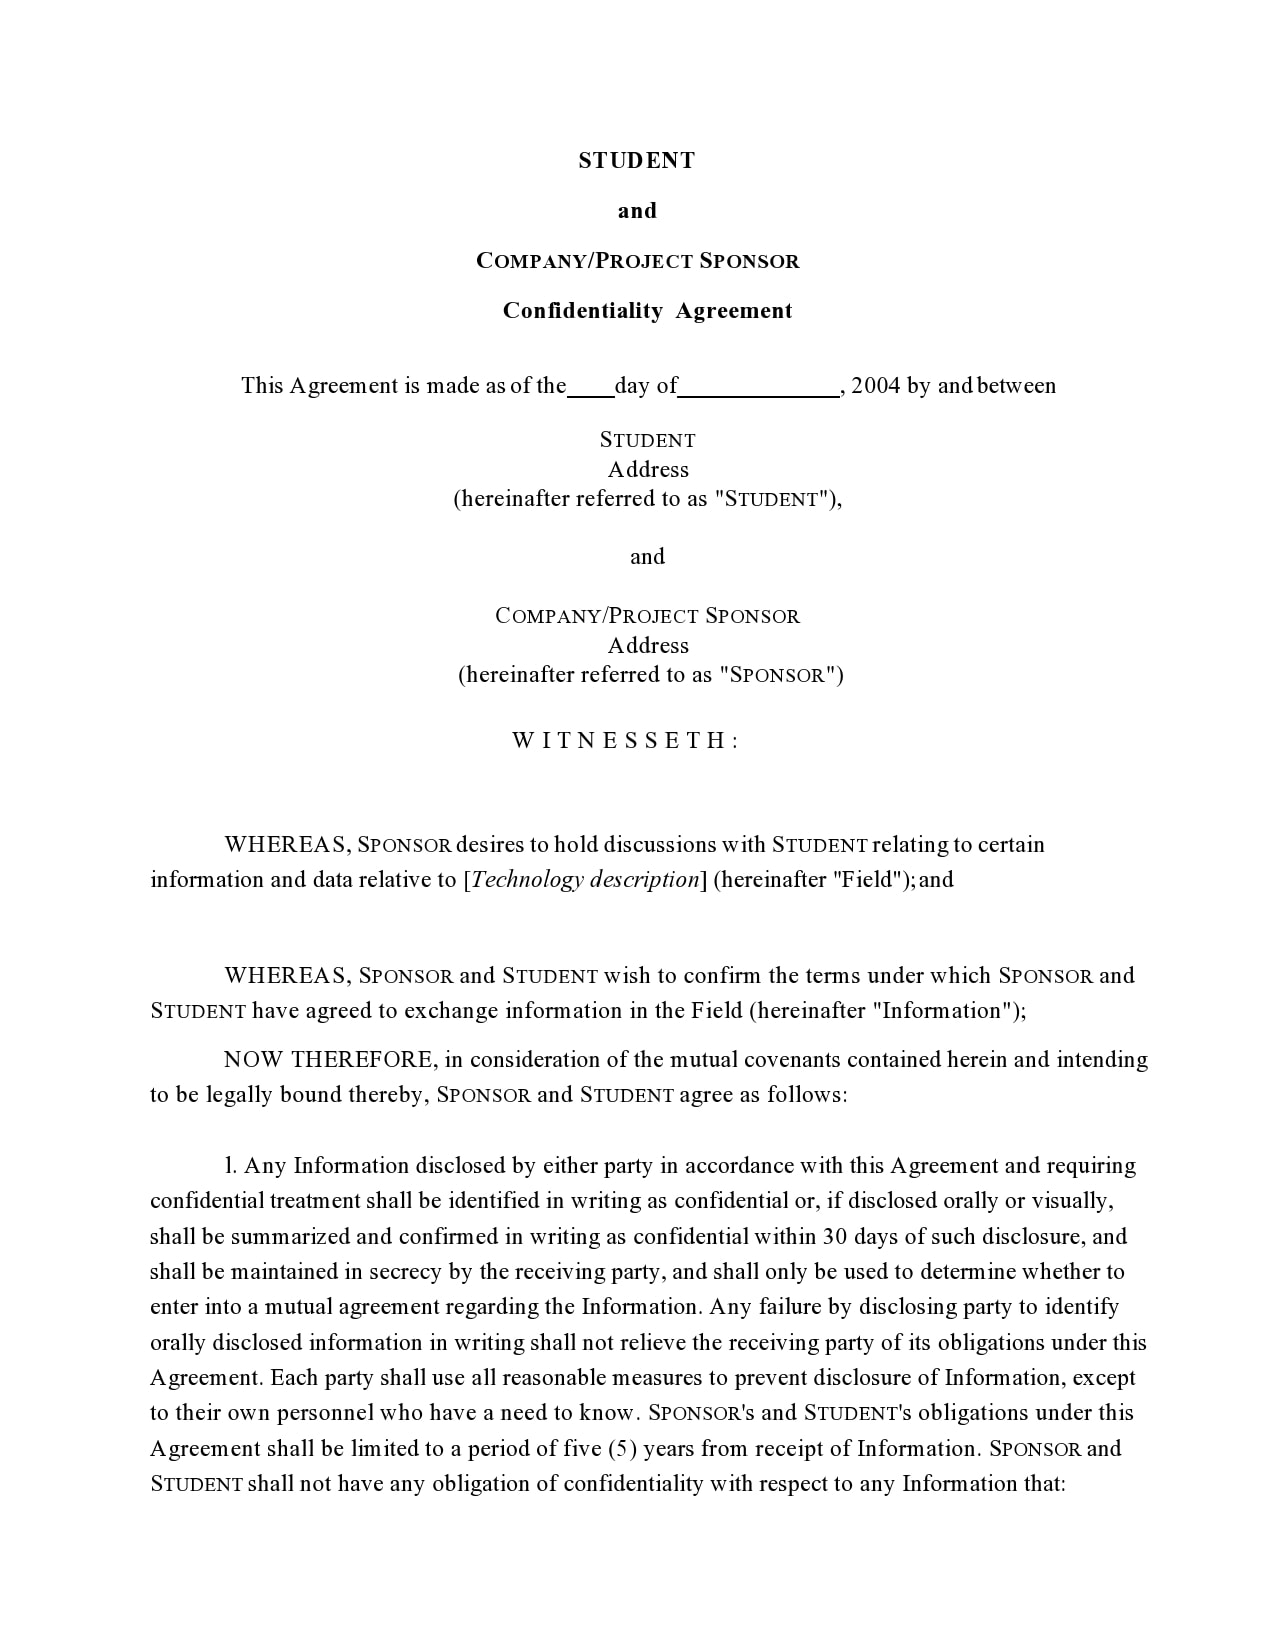 confidentiality agreement template 33